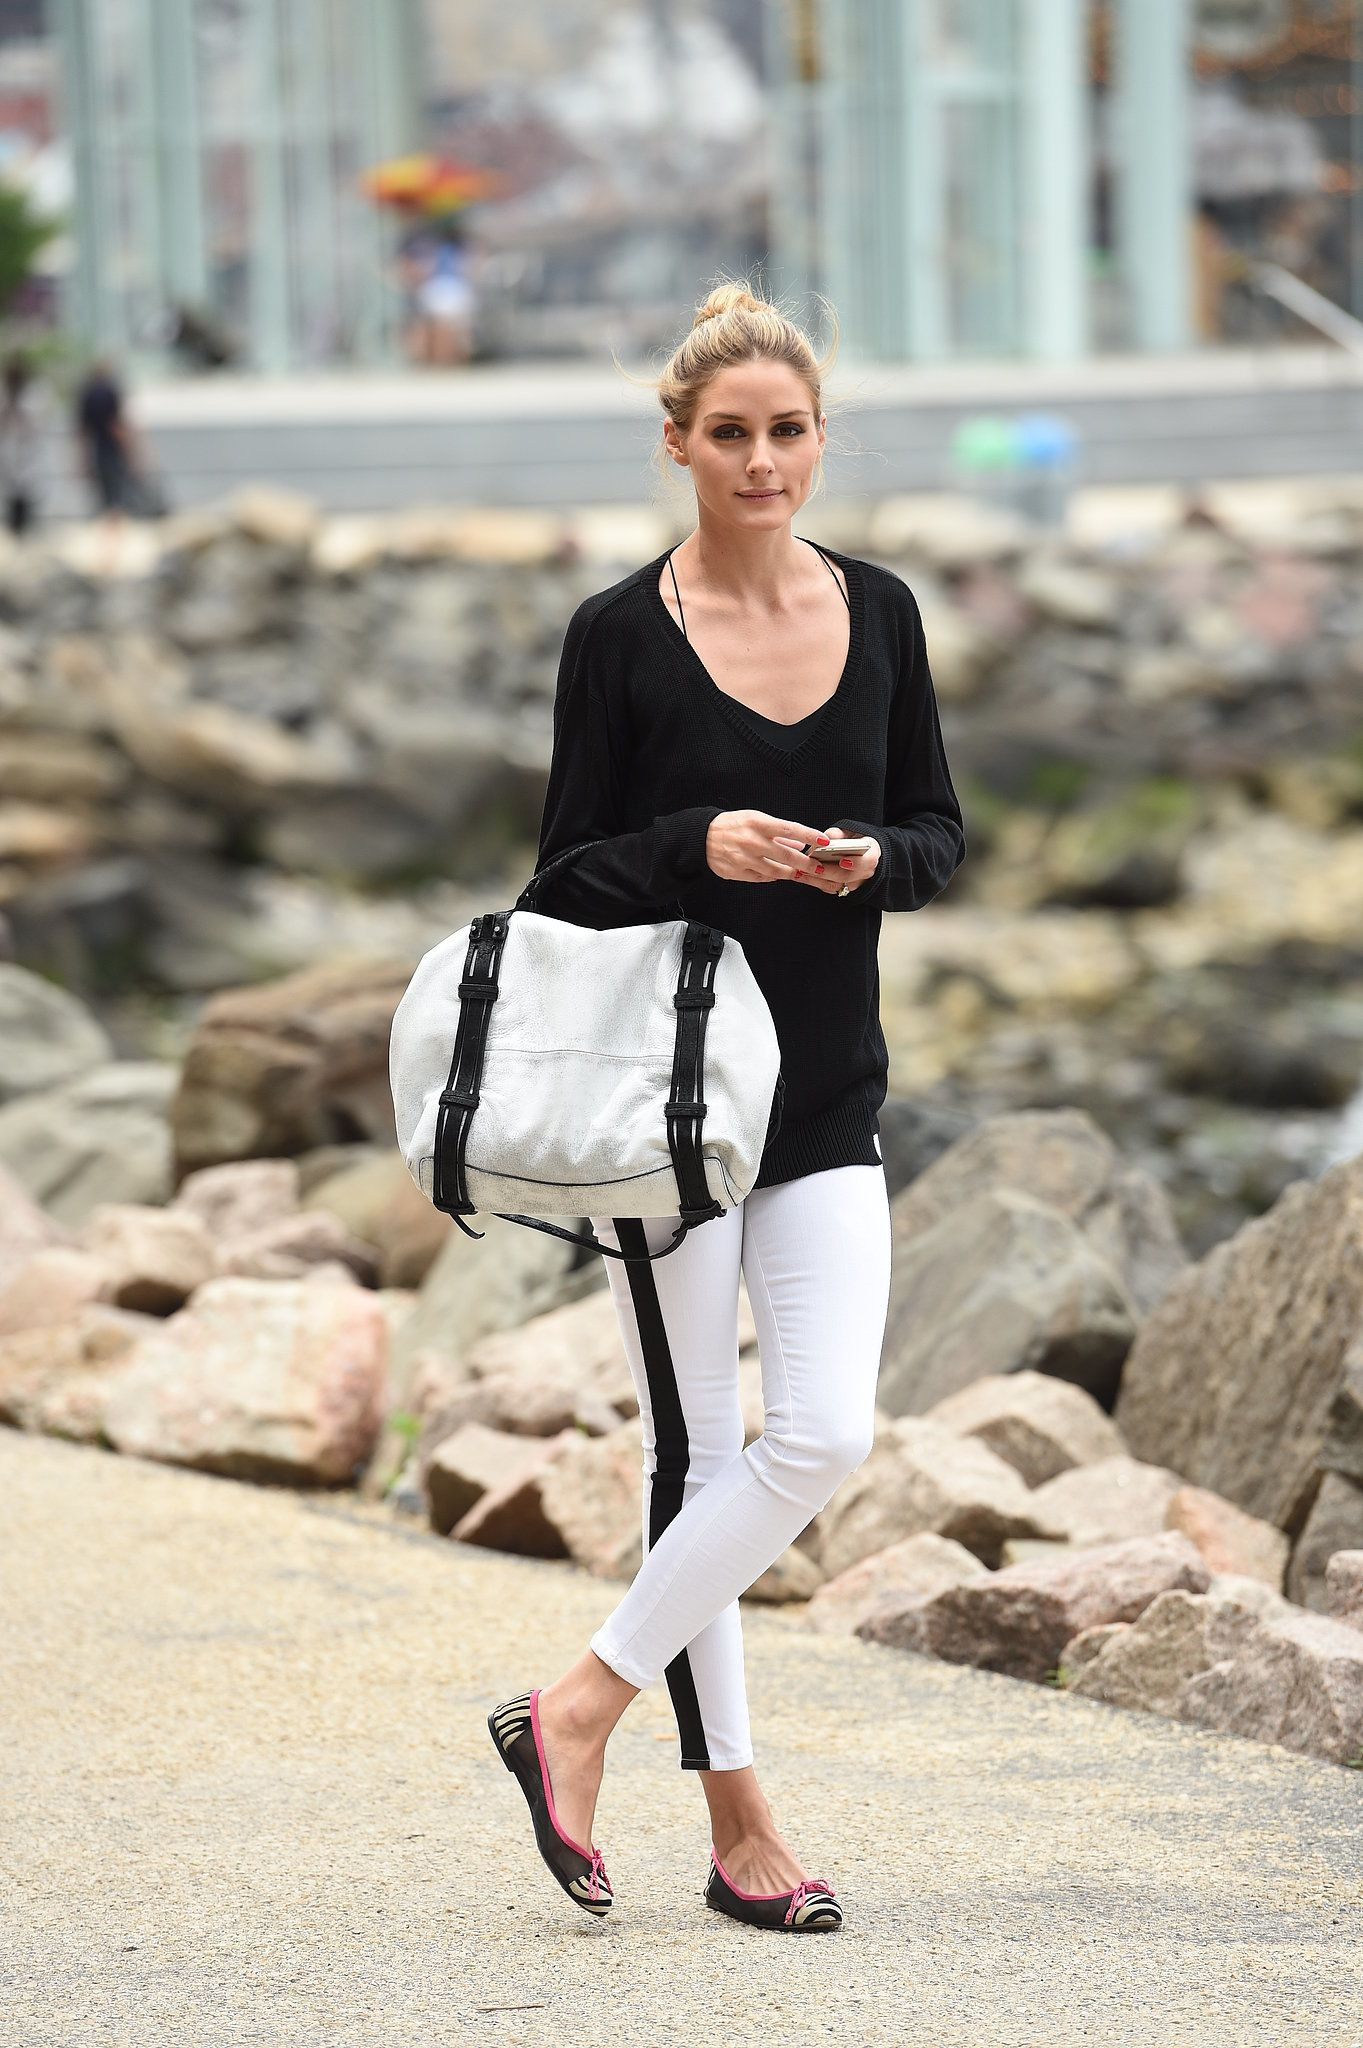 Olivia Palermo: With her cool black and white outfit, Olivia's black and silver two-toned She + Lo bag was the perfect complement. Shop it for yourself when you scroll.